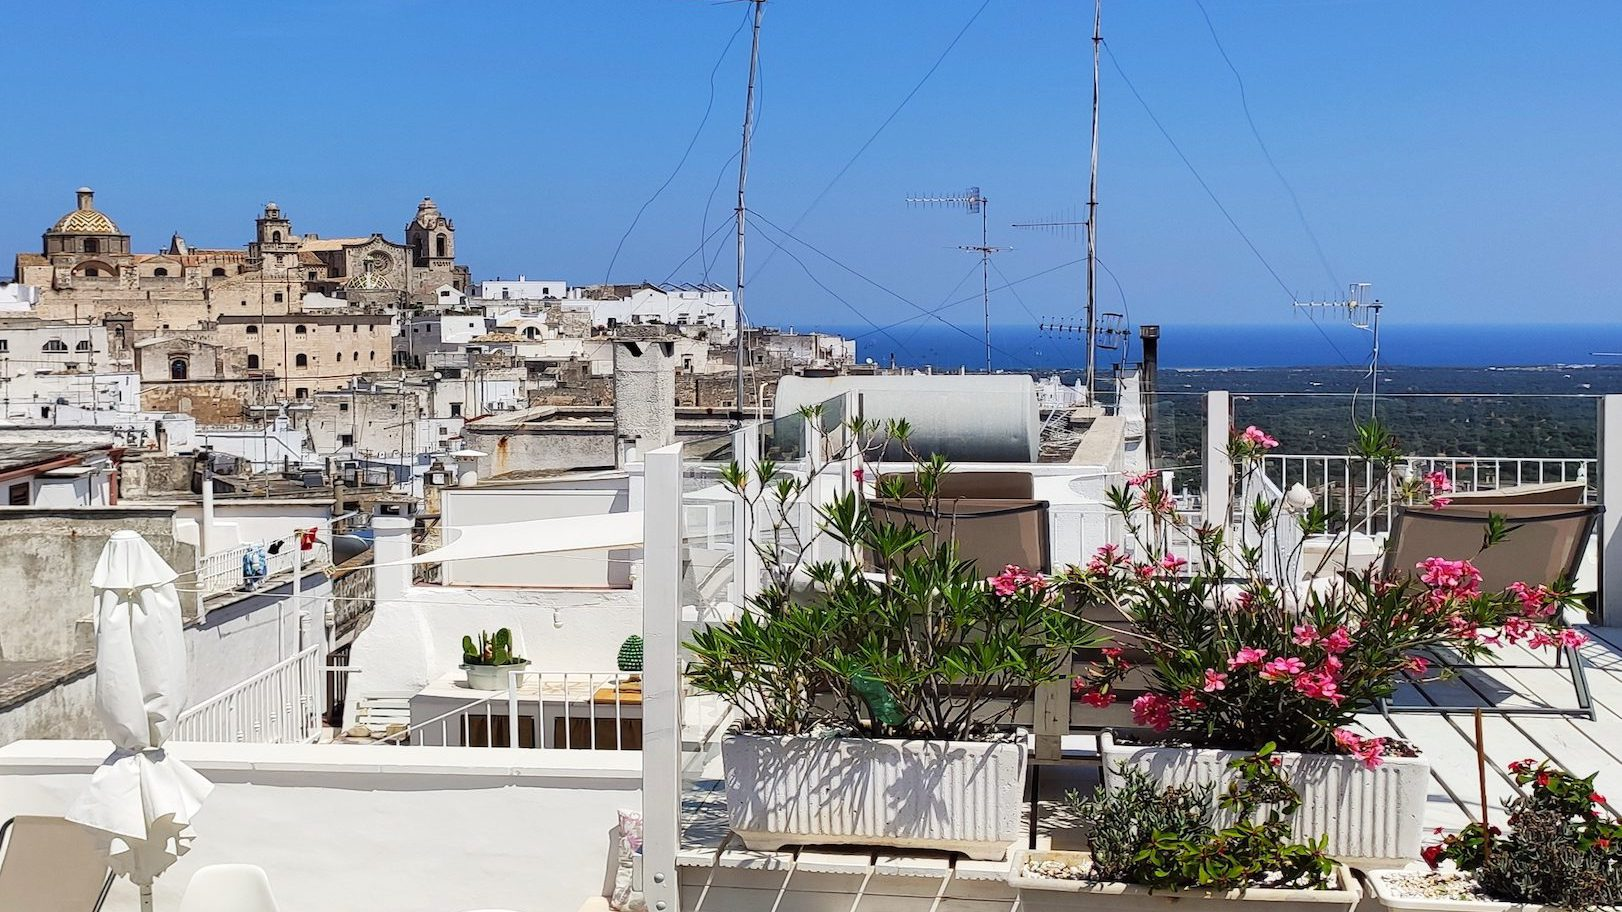 Amazing panorama of Puglia's Ostuni Old Town and the blue Adriatic sea from the upper rooftop terrace at Casa dei Fiori holiday rental home